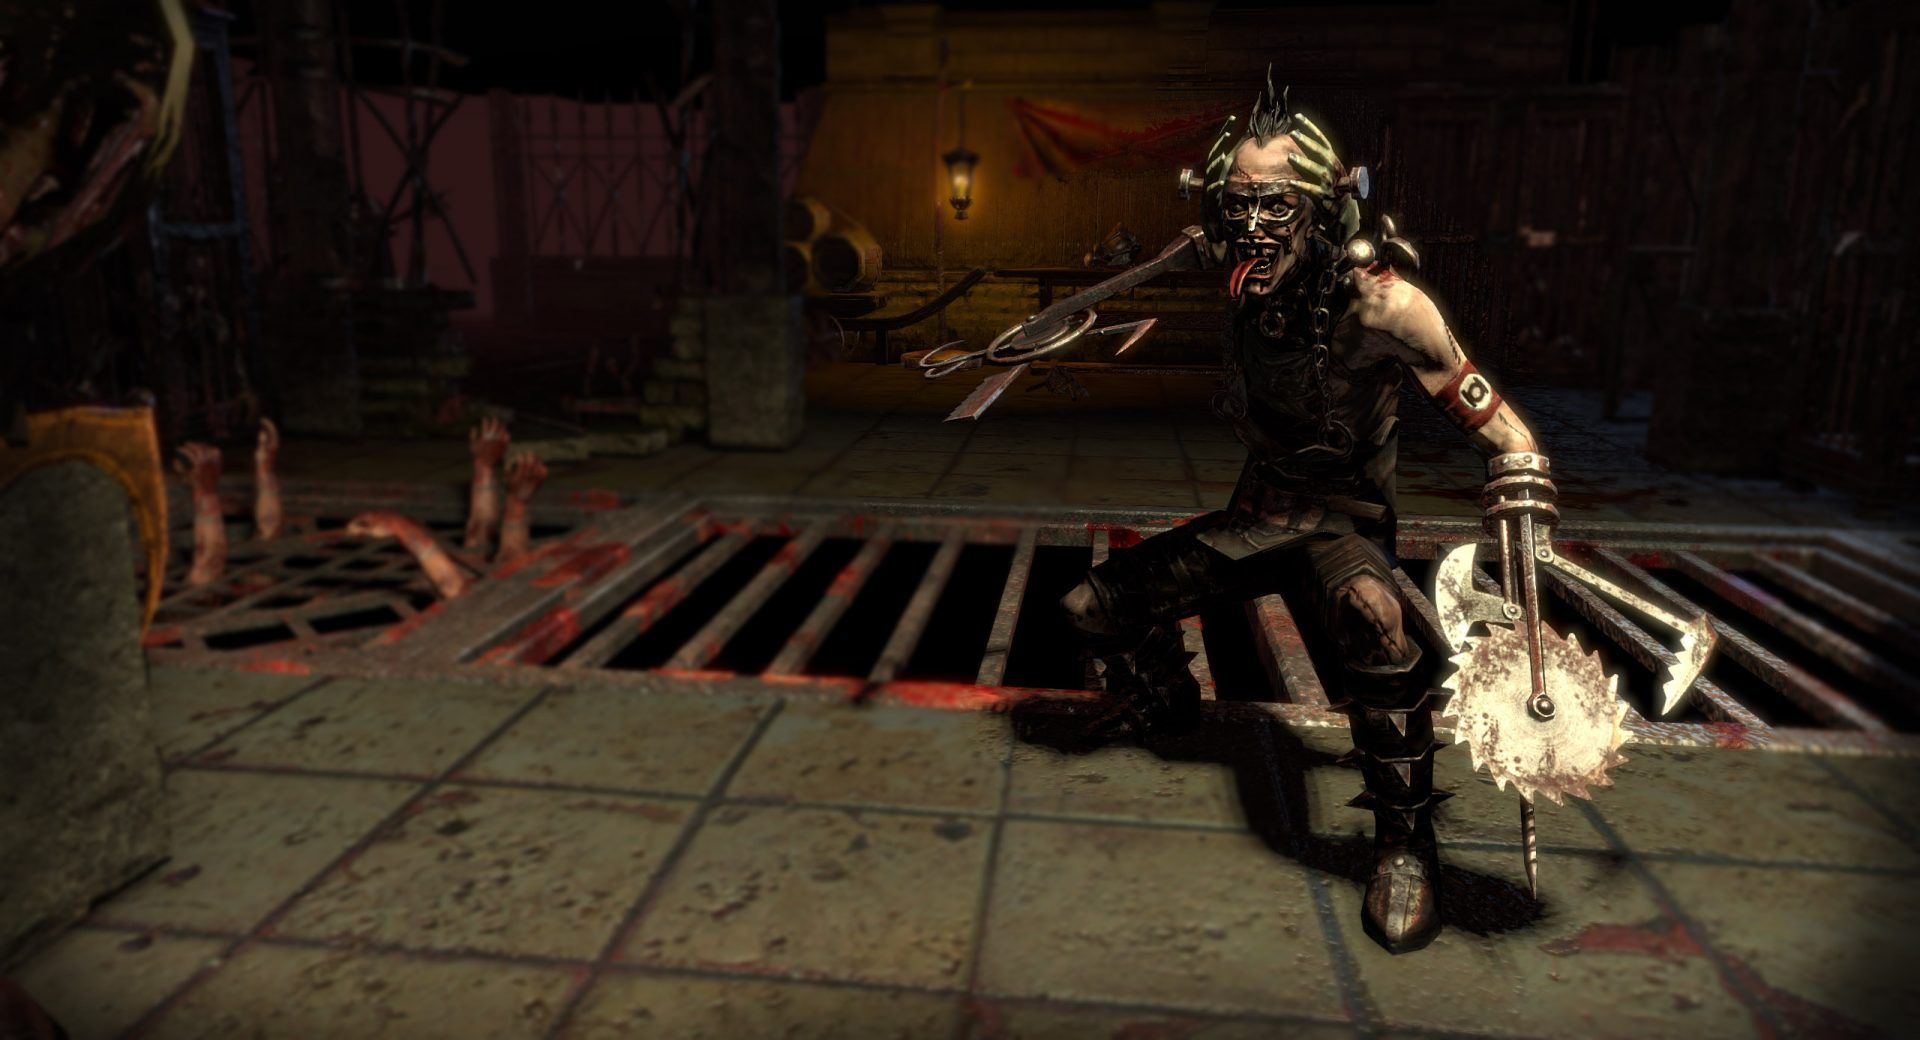 Path of Exile - Skill Effects Sale Arrives this Weekend